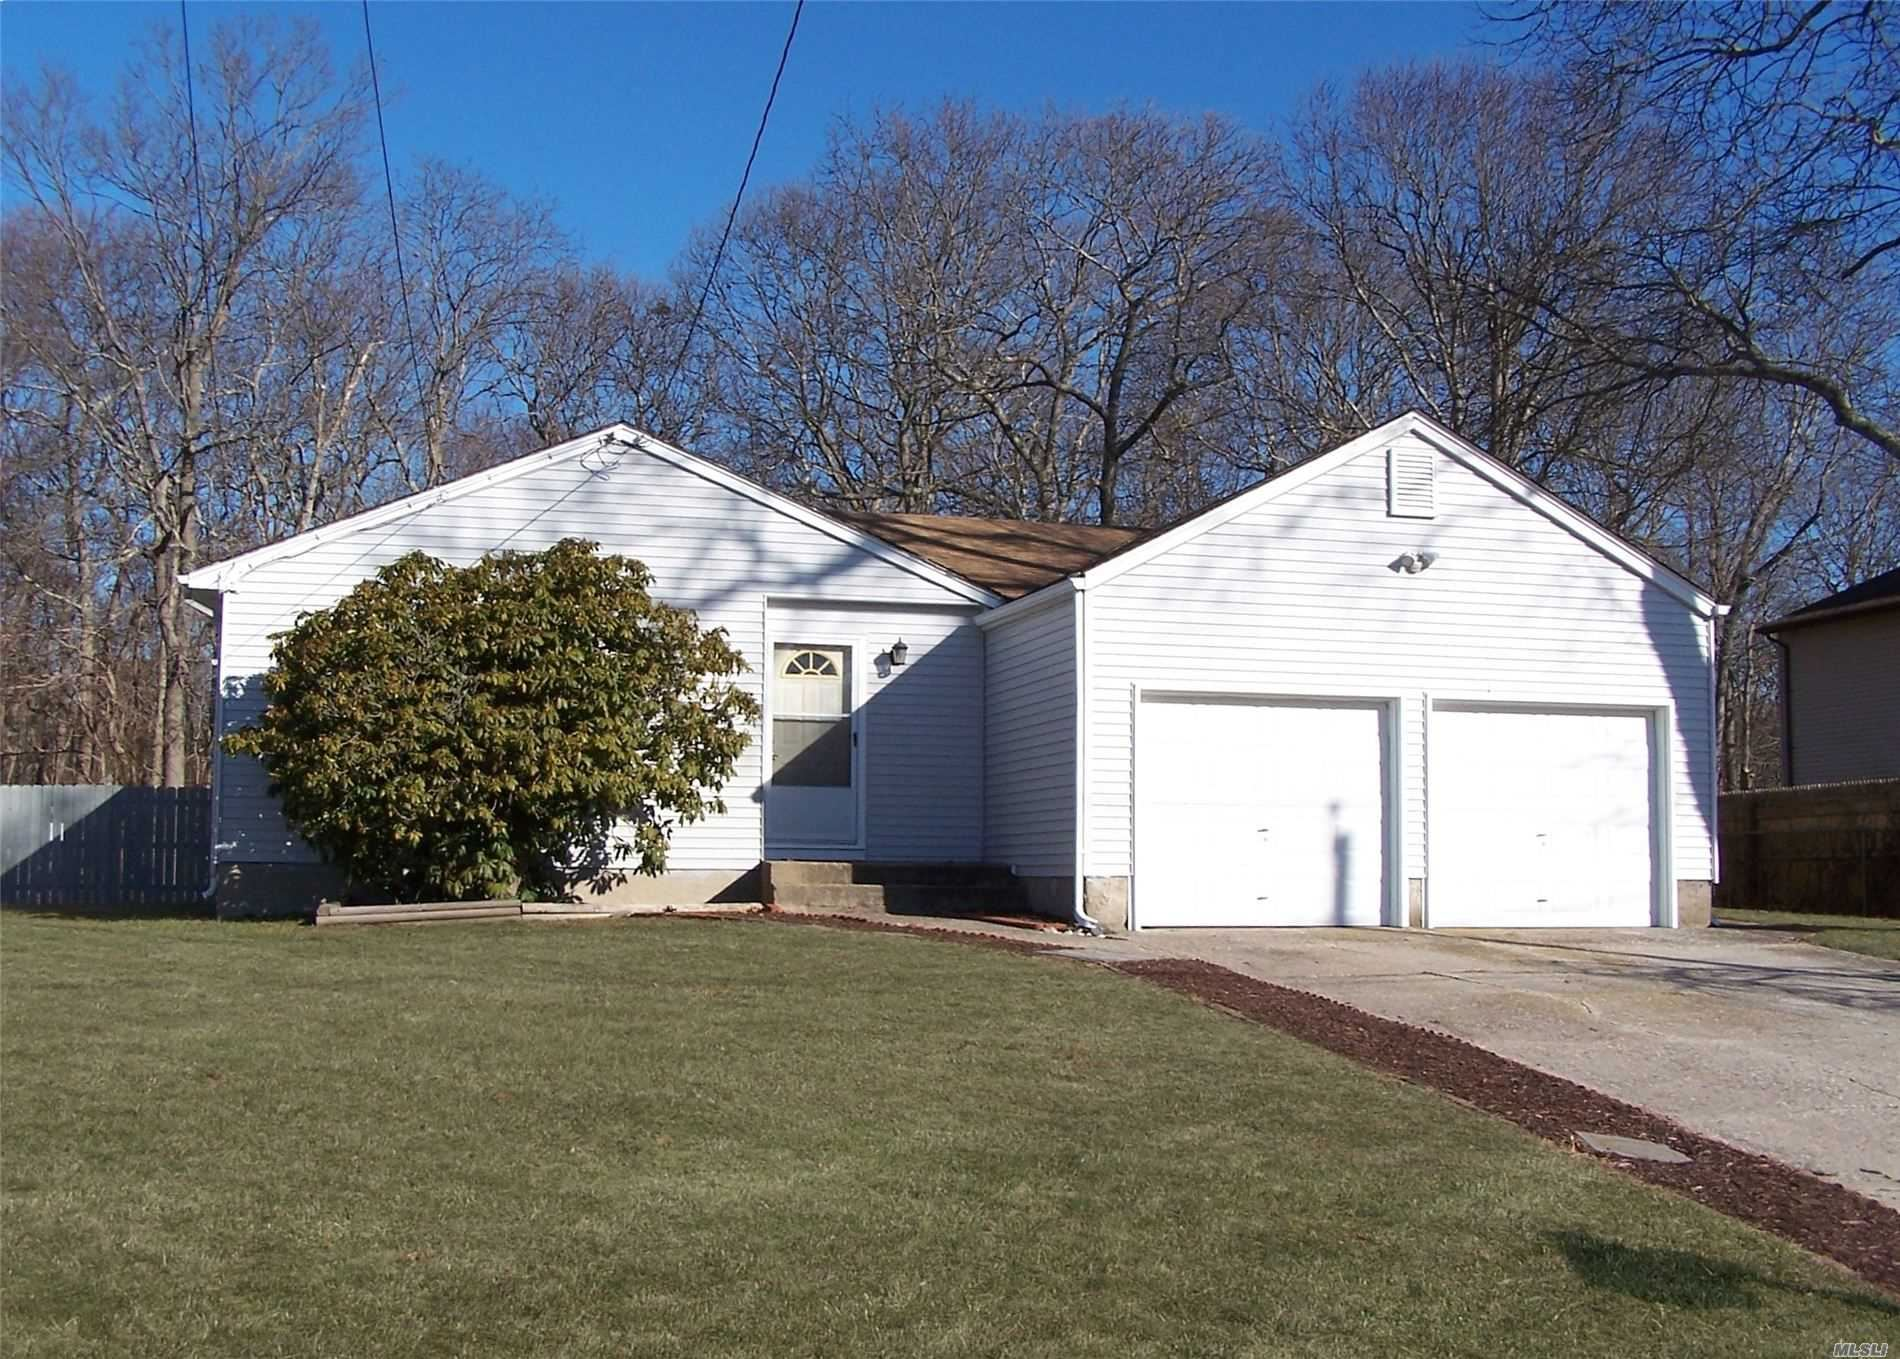 35 Golden Gate Drive, Shirley, NY 11967 - MLS#: 3193788